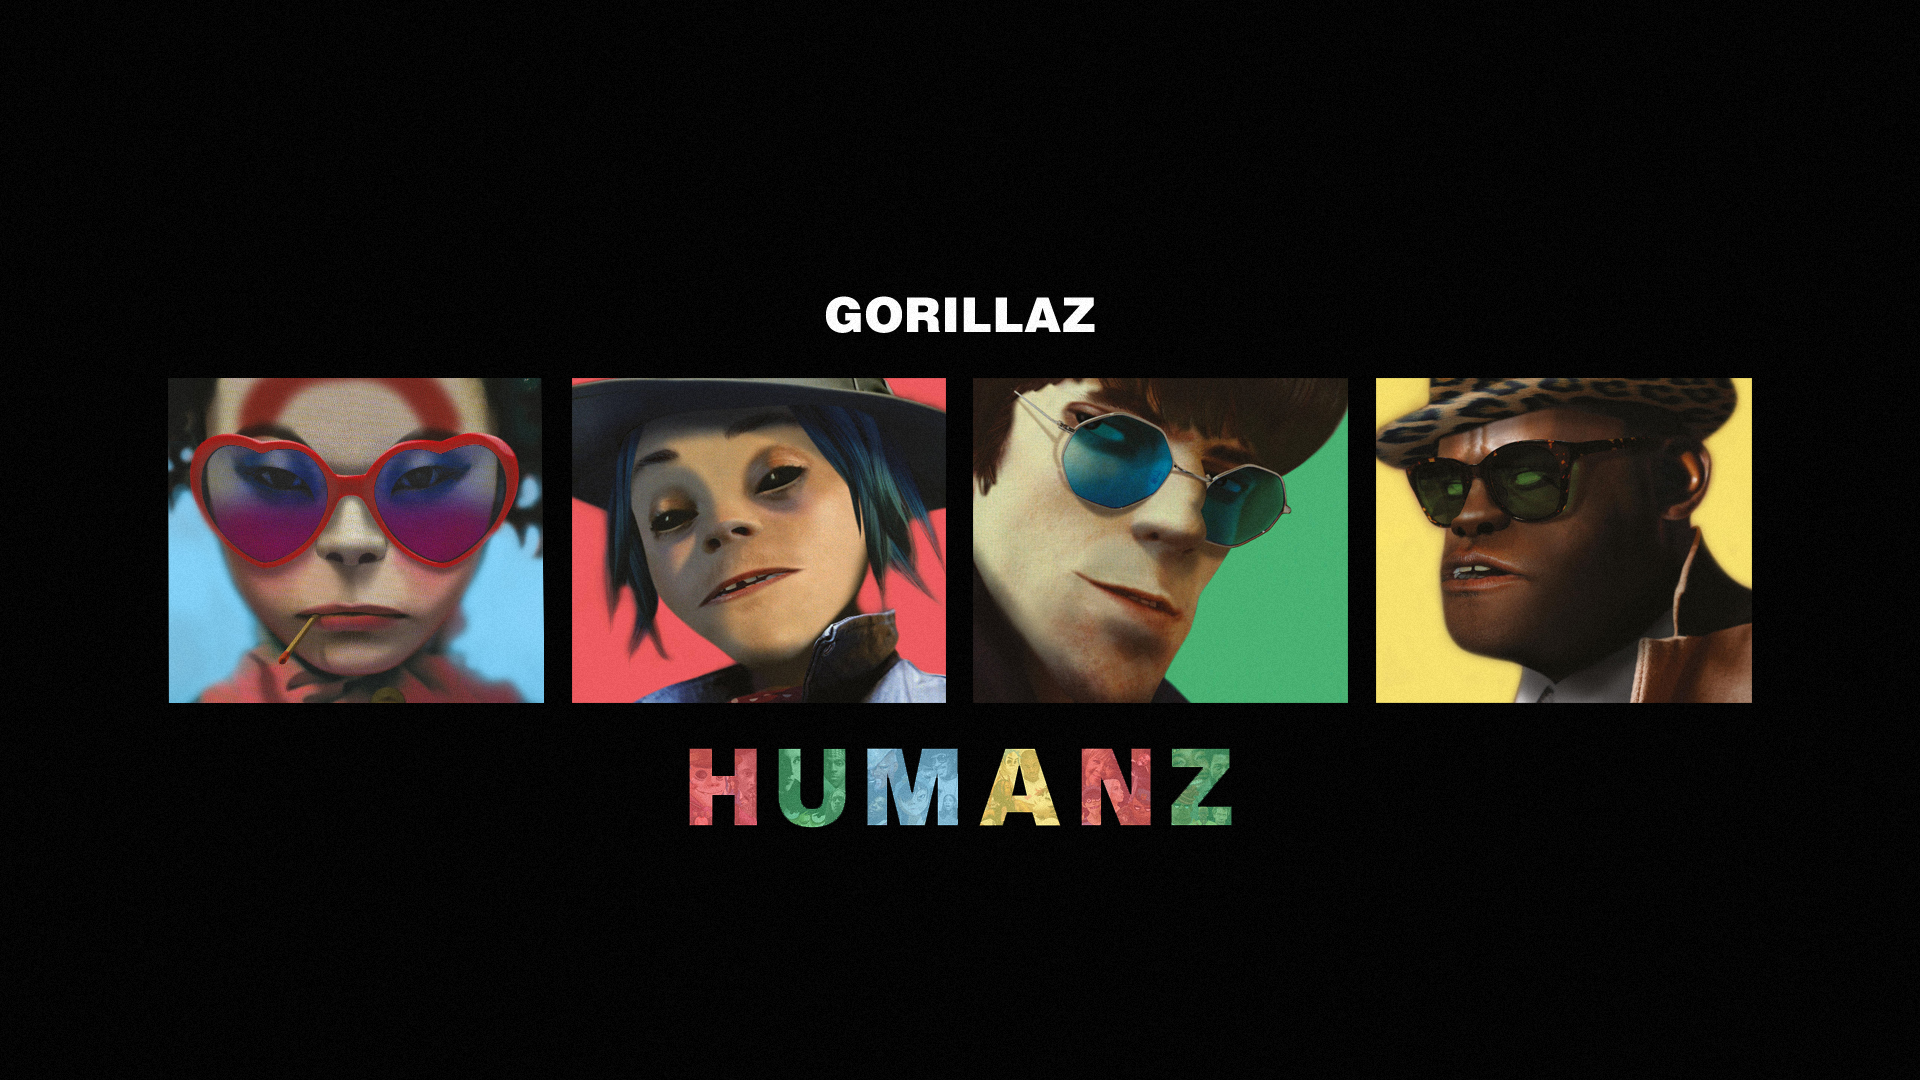 Gorillaz Humanz Desktop Wallpaper (1920x1080) Need